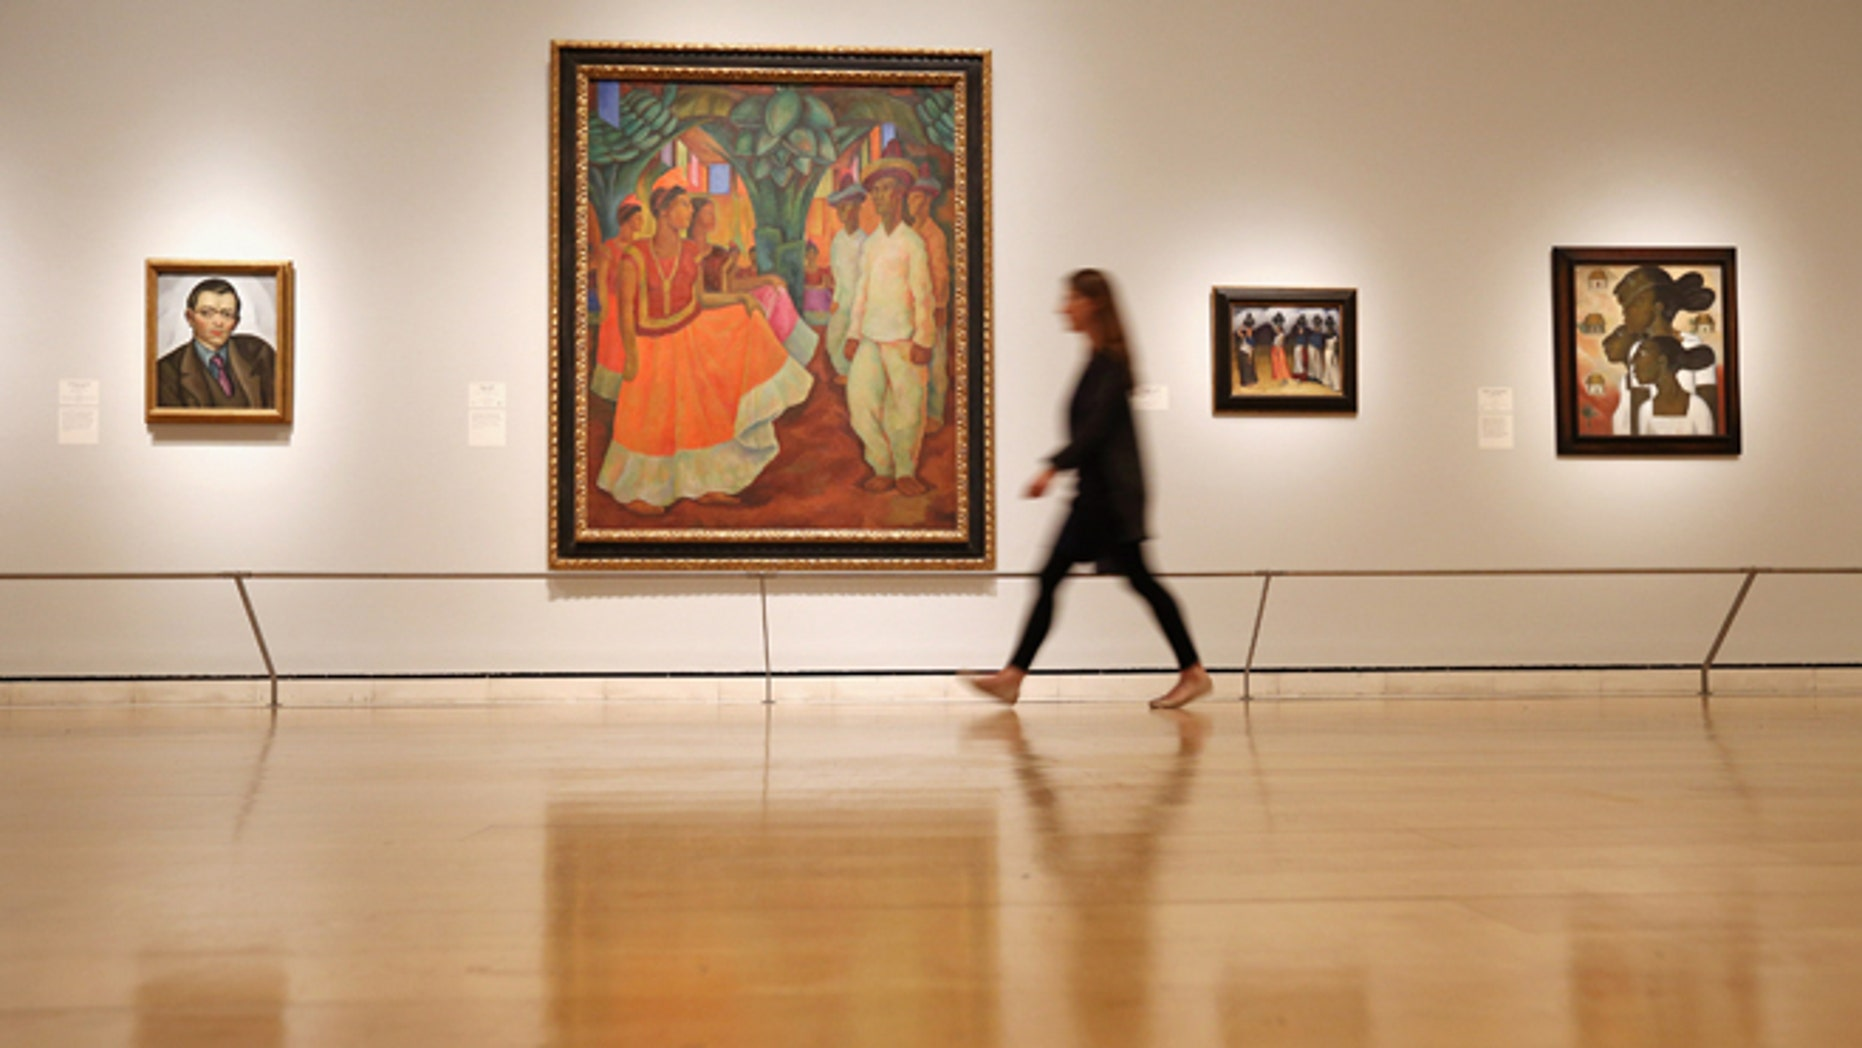 LONDON, ENGLAND - JULY 02:  A woman walks past a painting by Diego Rivera entitled 'Dance in Tehuantepec' (C) in the Royal Academy of Arts on July 2, 2013 in London, England. The painting features in the exhibition 'Mexico: A Revolution in Art, 1910-1940' which examines artworks influenced by the period of revolution and turmoil in Mexico between 1910 and 1920. The exhibition, which showcases 120 paintings and photographs, open to the public on July 6, 2013 and runs until September 29, 2013.  (Photo by Oli Scarff/Getty Images)